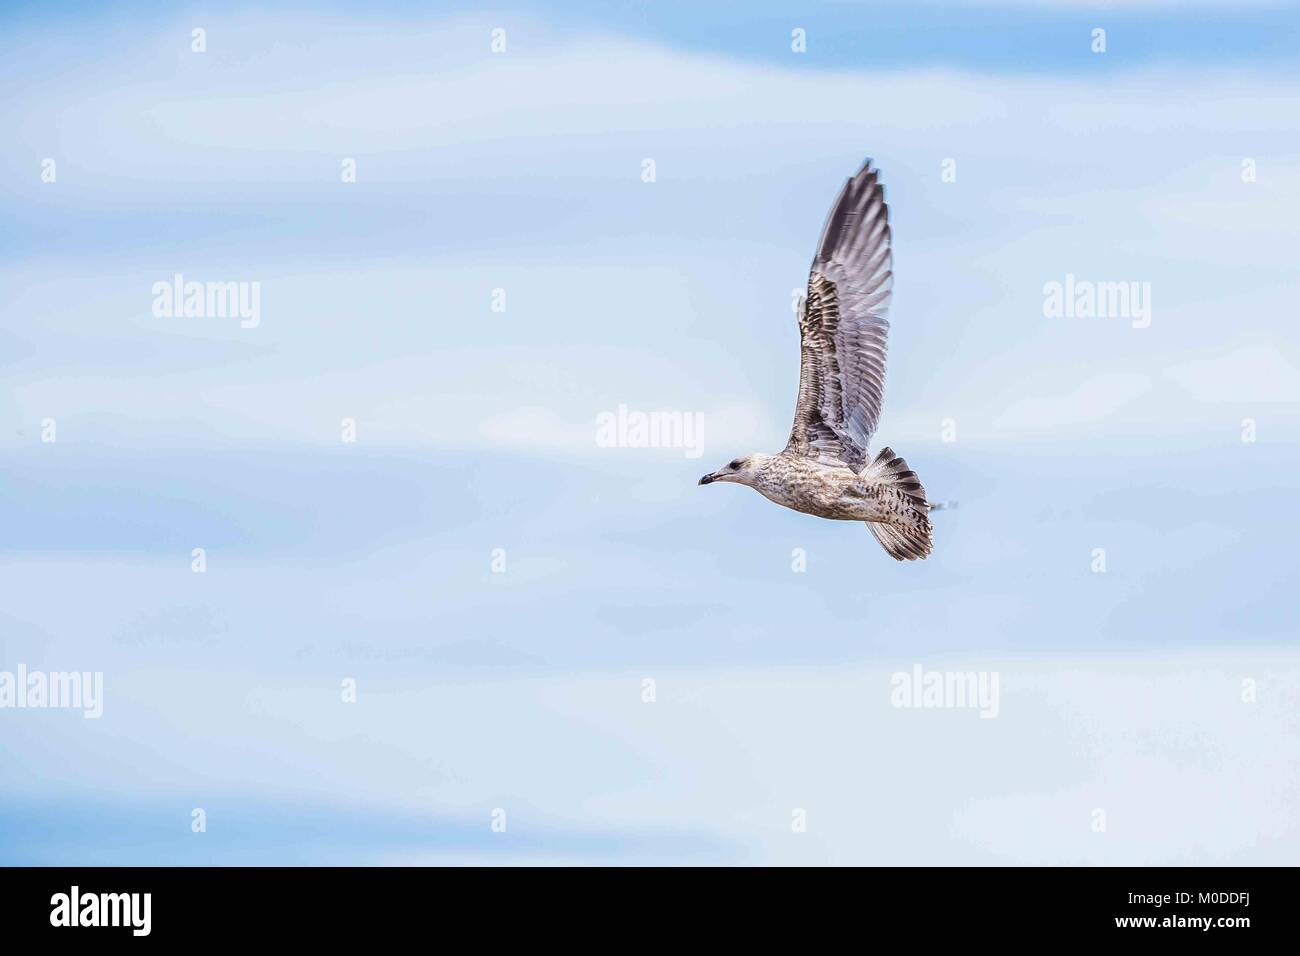 Juvenile seagulls on the South Devon coast. - Stock Image